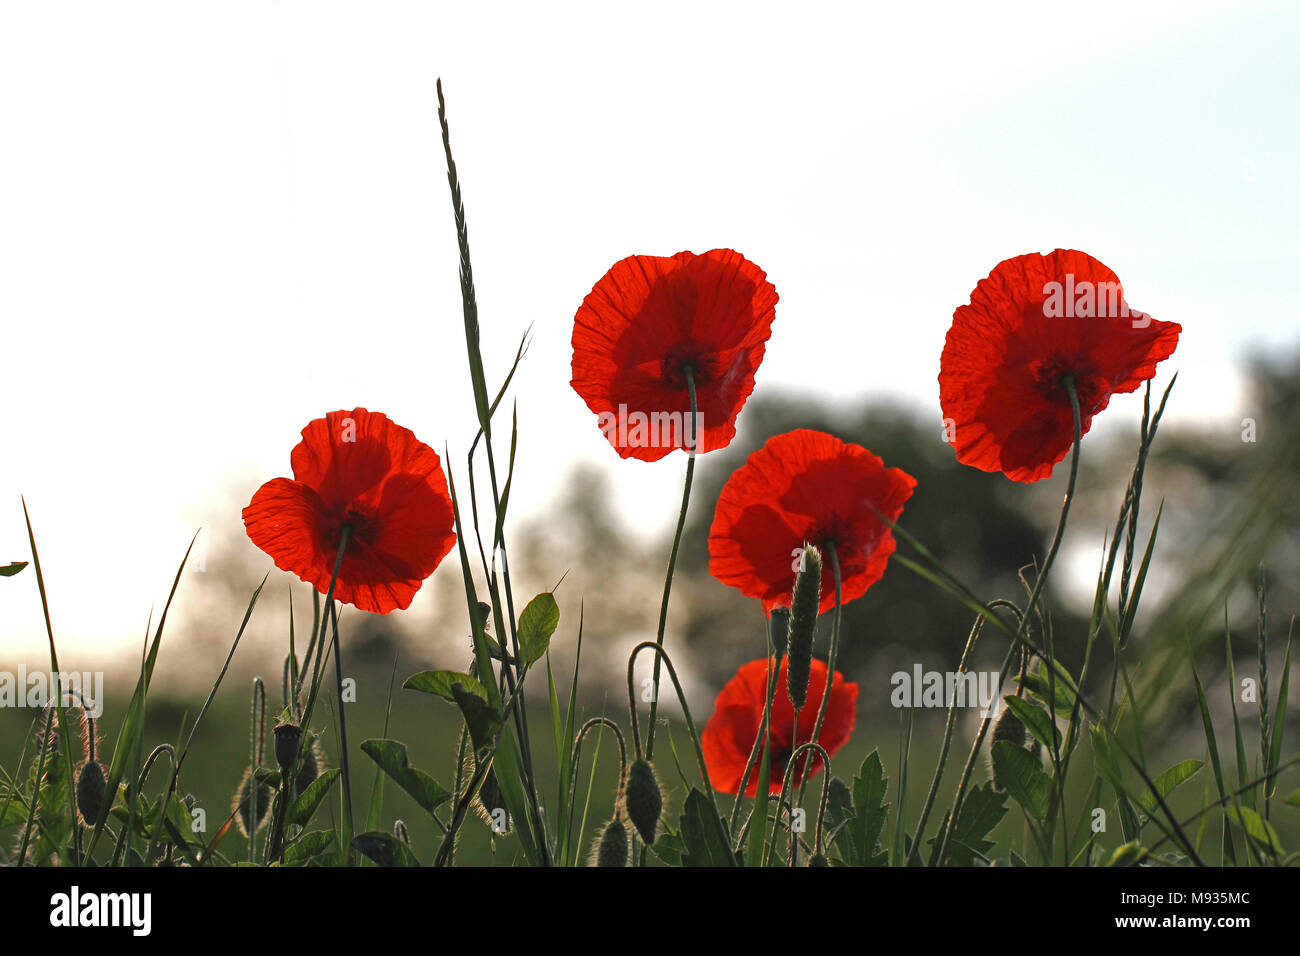 Flanders Poppies Stock Photos Flanders Poppies Stock Images Alamy